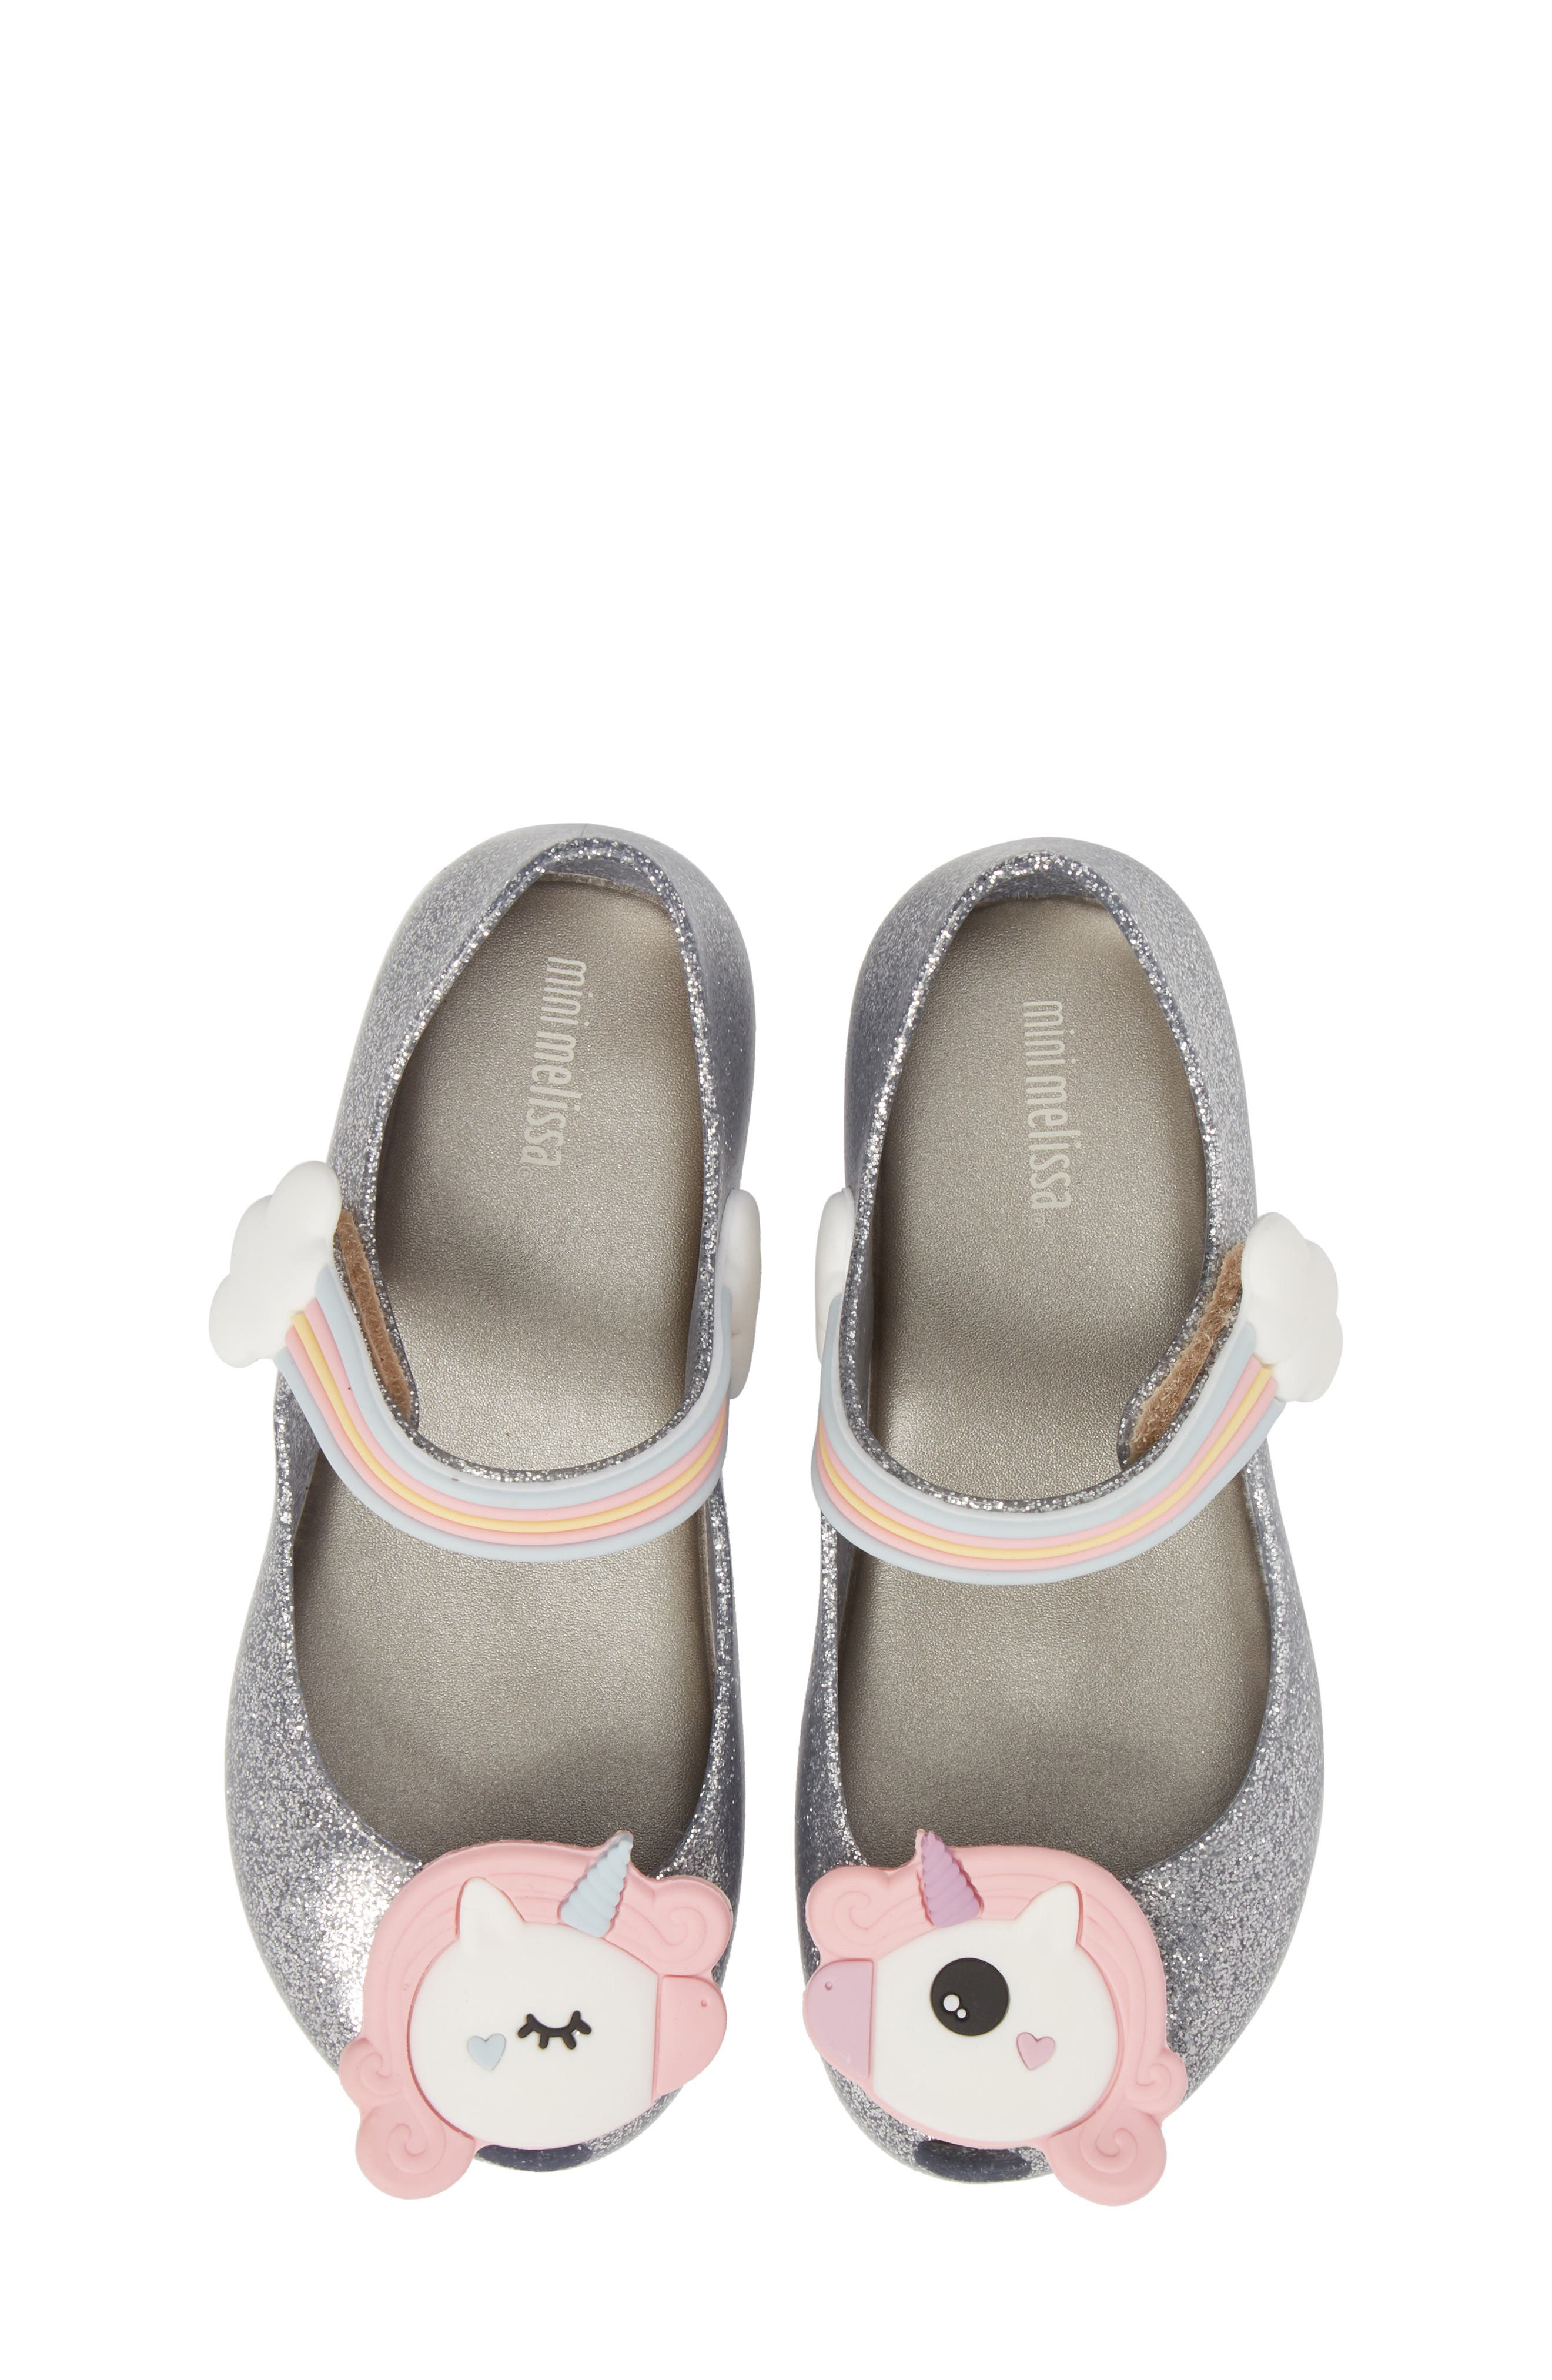 Ultragirl Unicorn Glittery Mary Jane Flat,                         Main,                         color, SILVER GLITZ